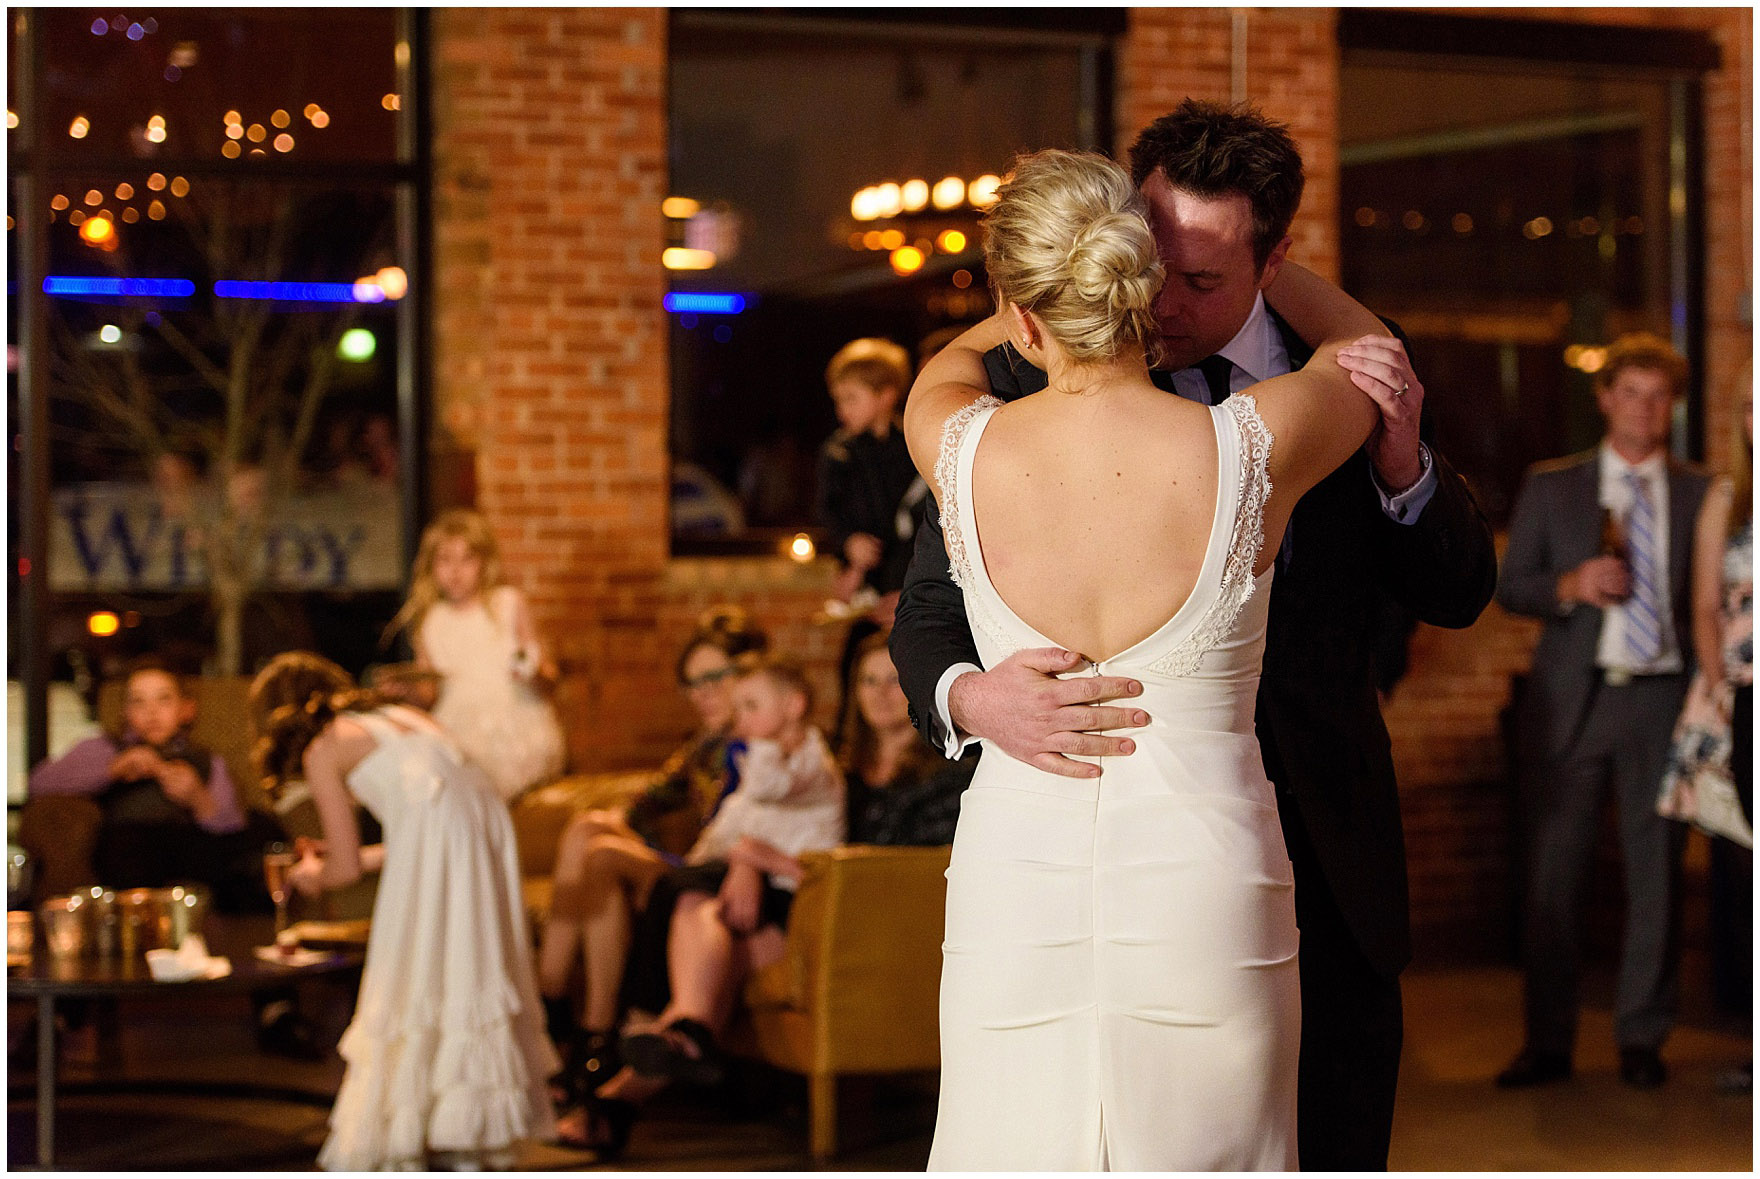 A bride and groom share their first dance at their Ovation Chicago wedding.